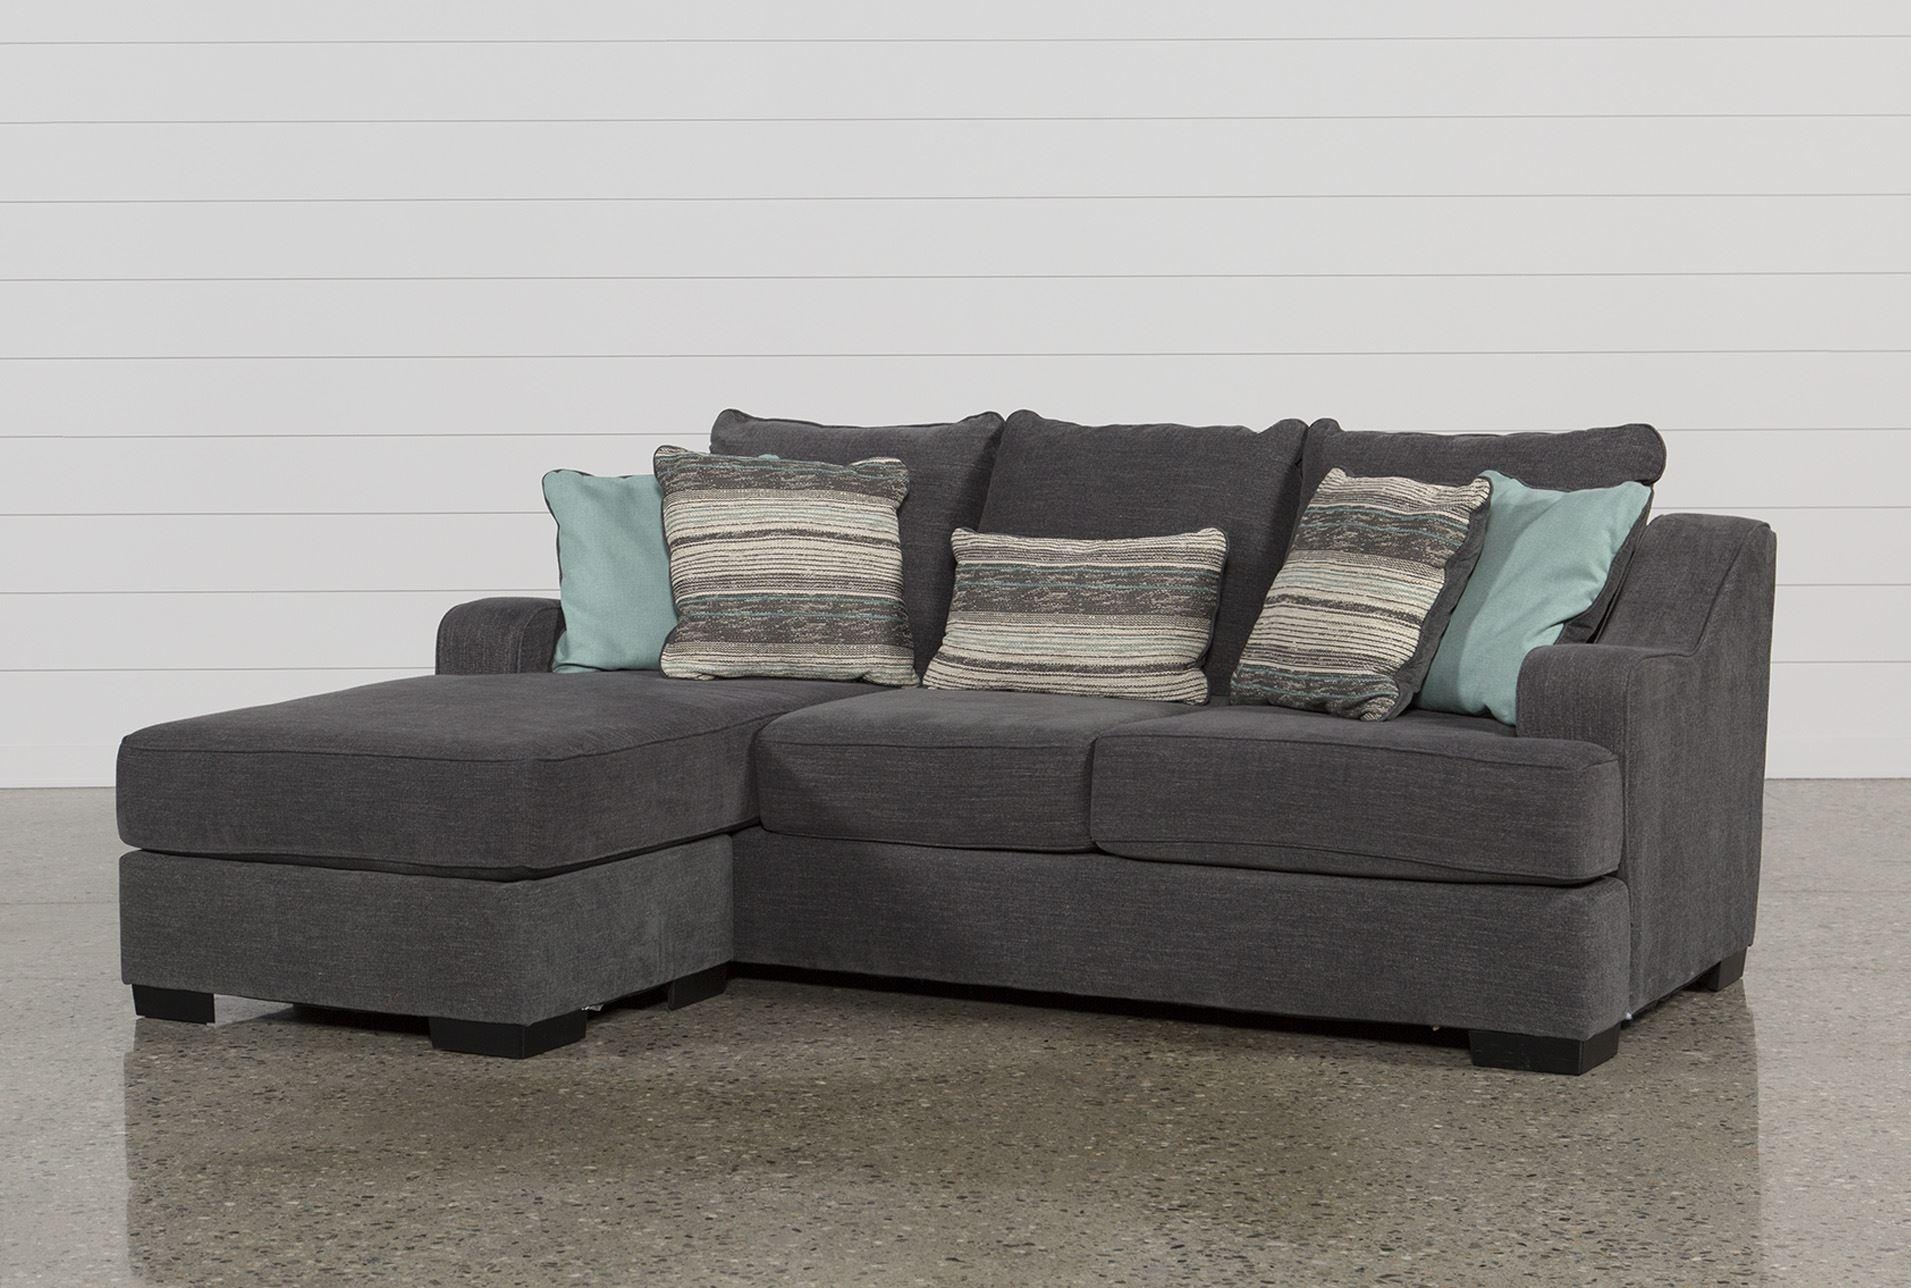 Sofas: Simmons Sleeper Sofa | Leather Queen Sleeper Sofa | Simmons Intended For Simmons Sleeper Sofas (Image 14 of 20)